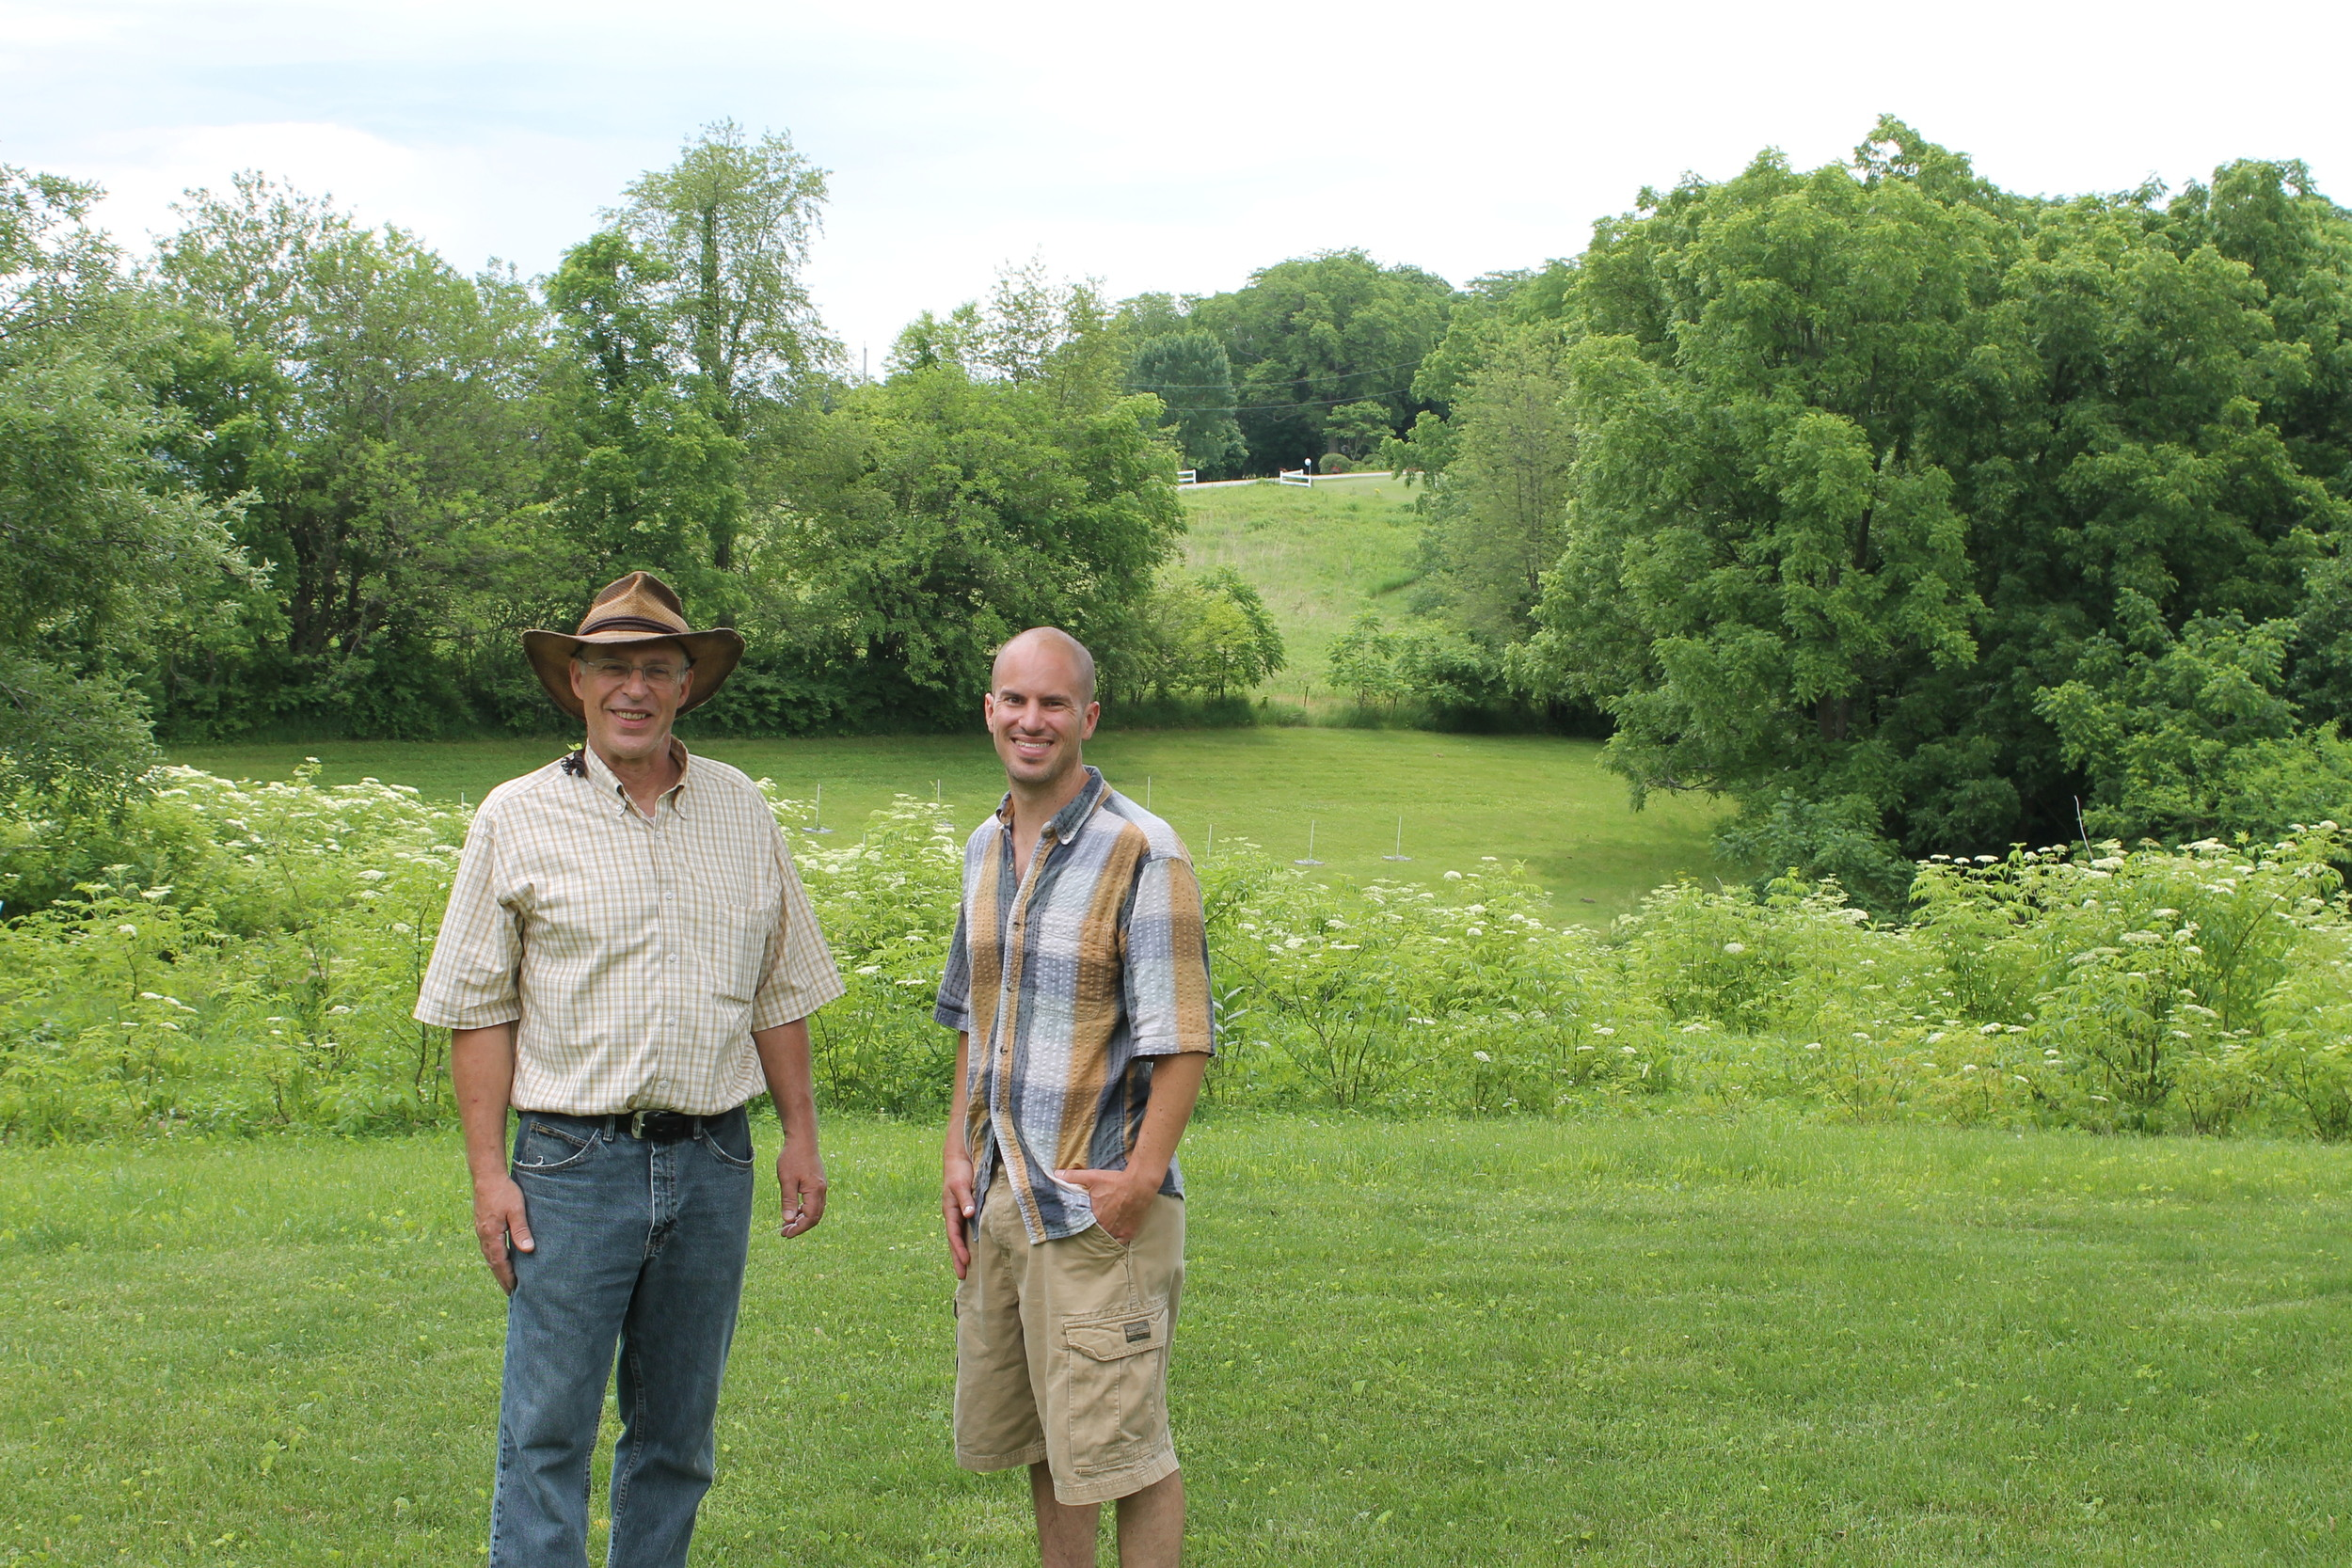 Andy Luegger, luegger elderberry farms stands with wayne during our first visit, of hopefully many, to the farm.